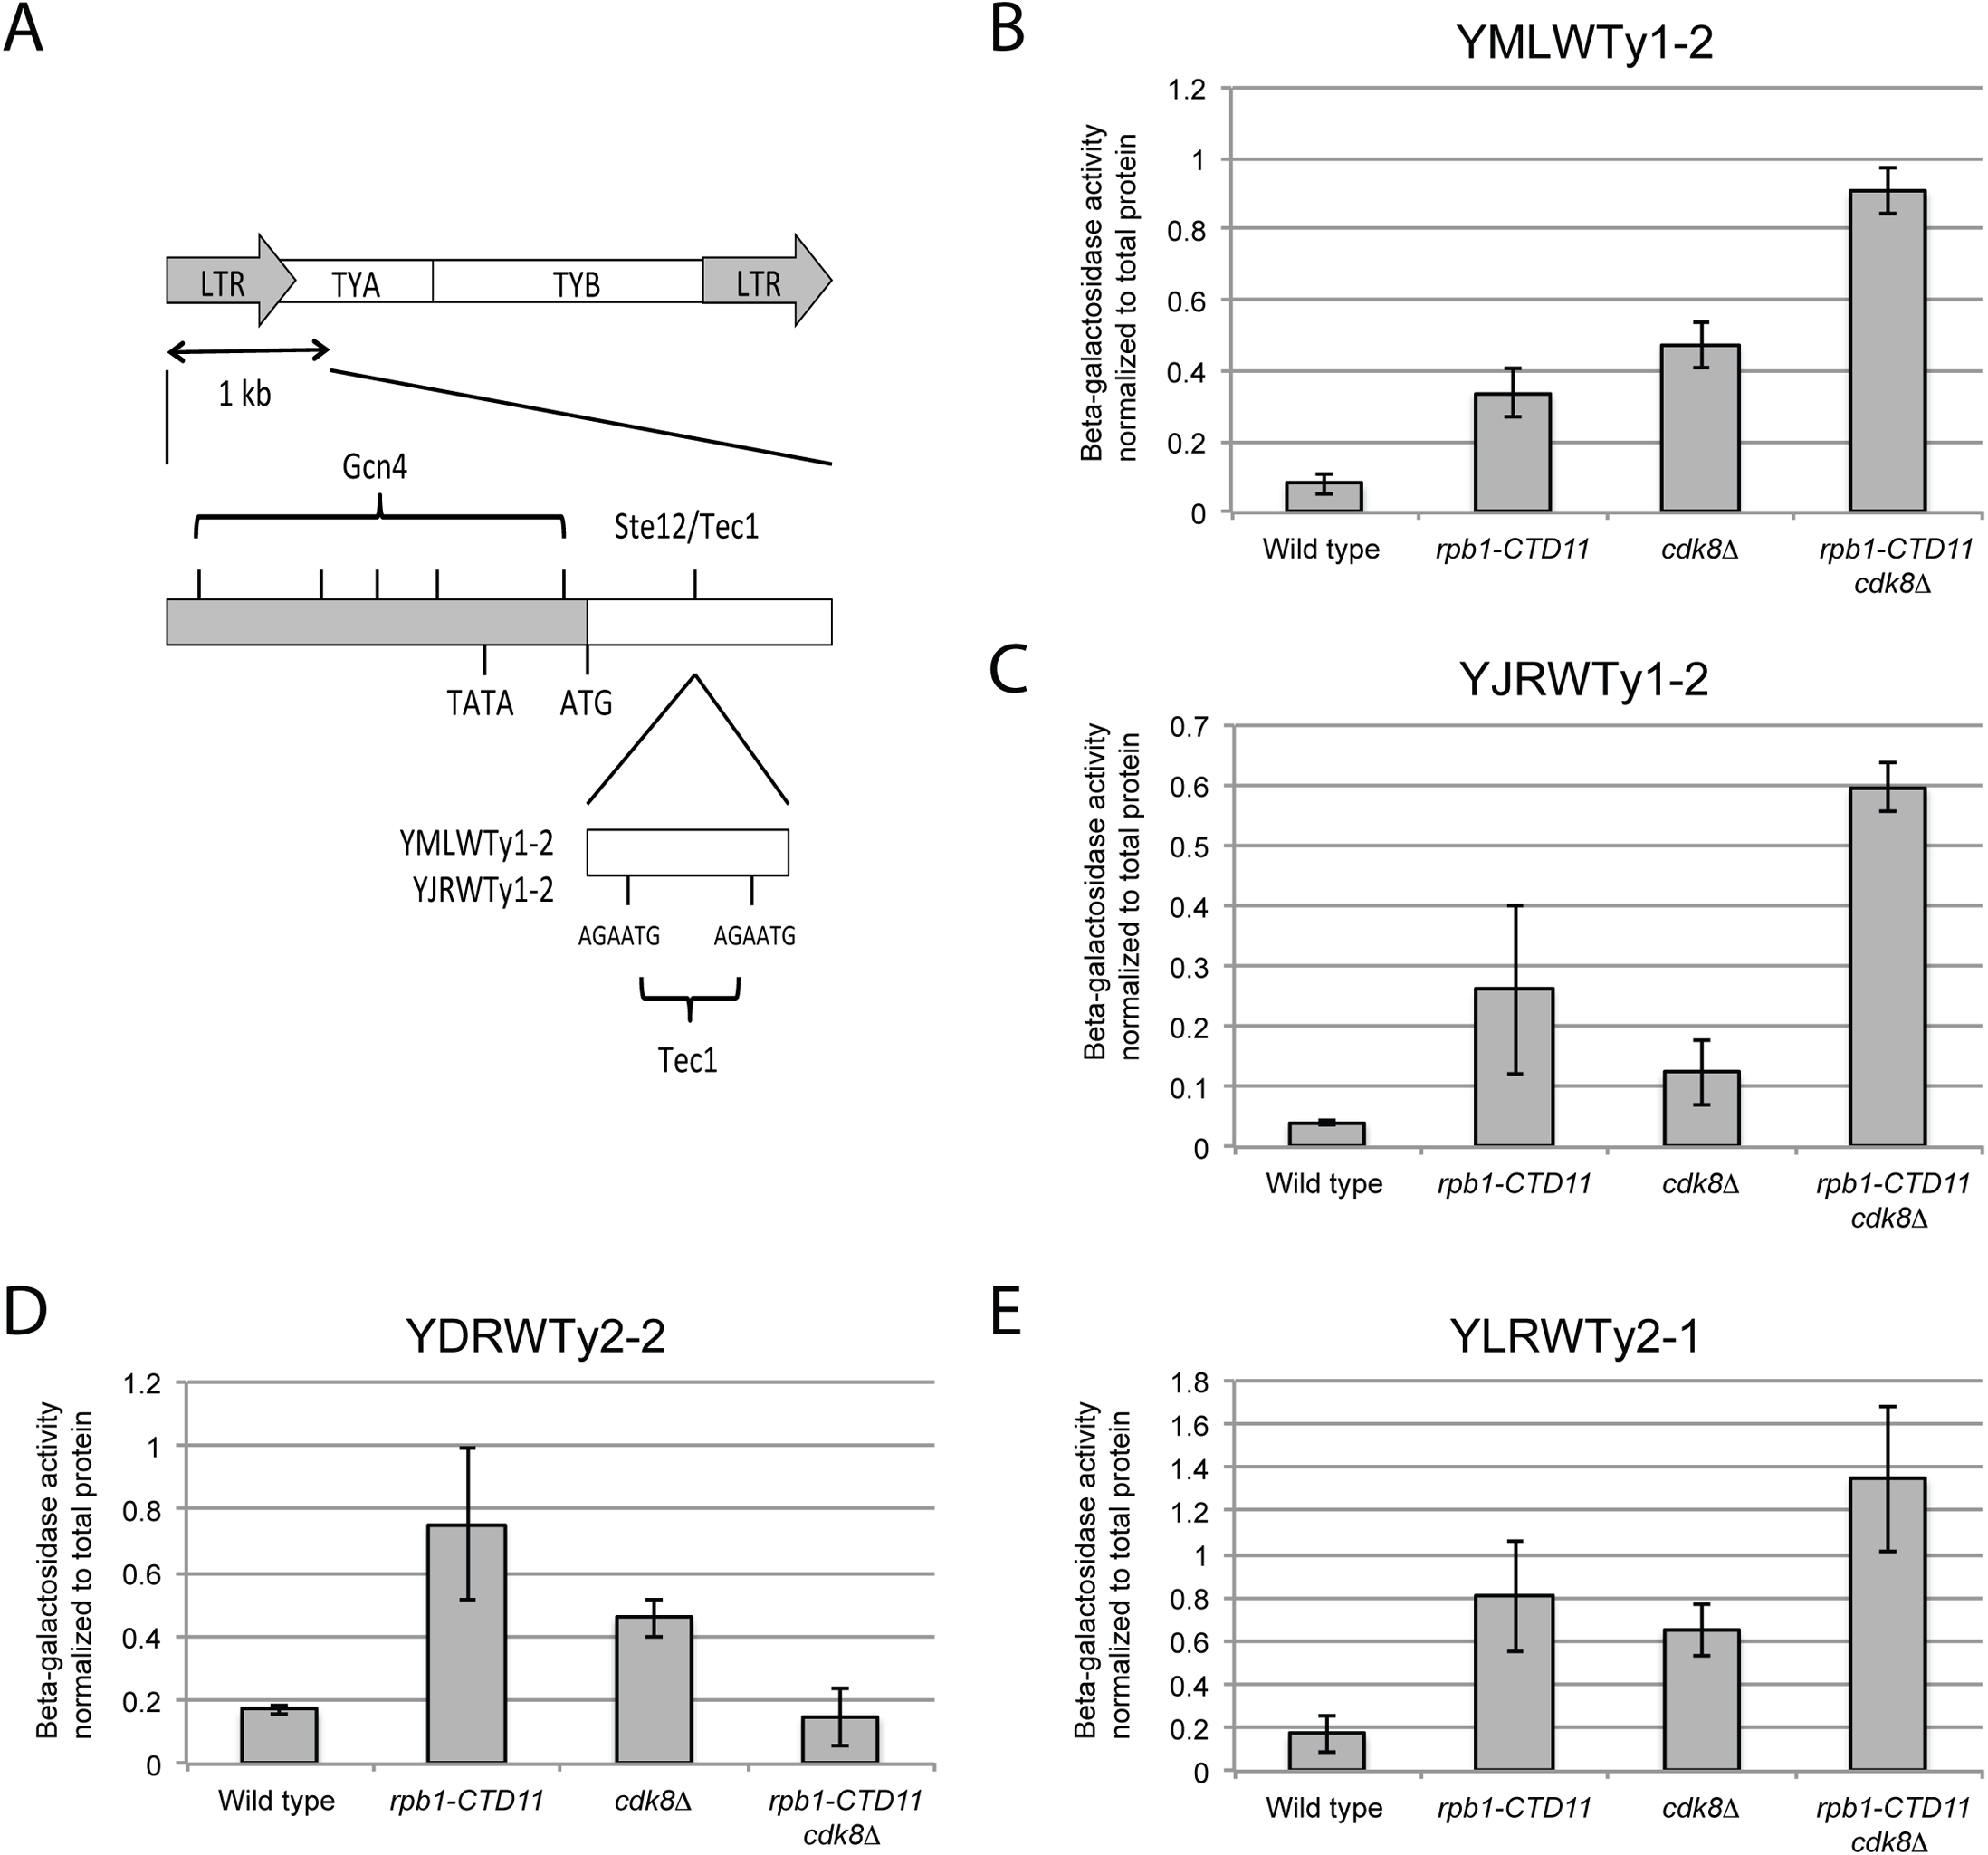 The increased retrotransposon mRNA levels in the <i>rpb1-CTD11</i> and <i>cdk8Δ</i> mutant were in part due to alterations to promoter activity.